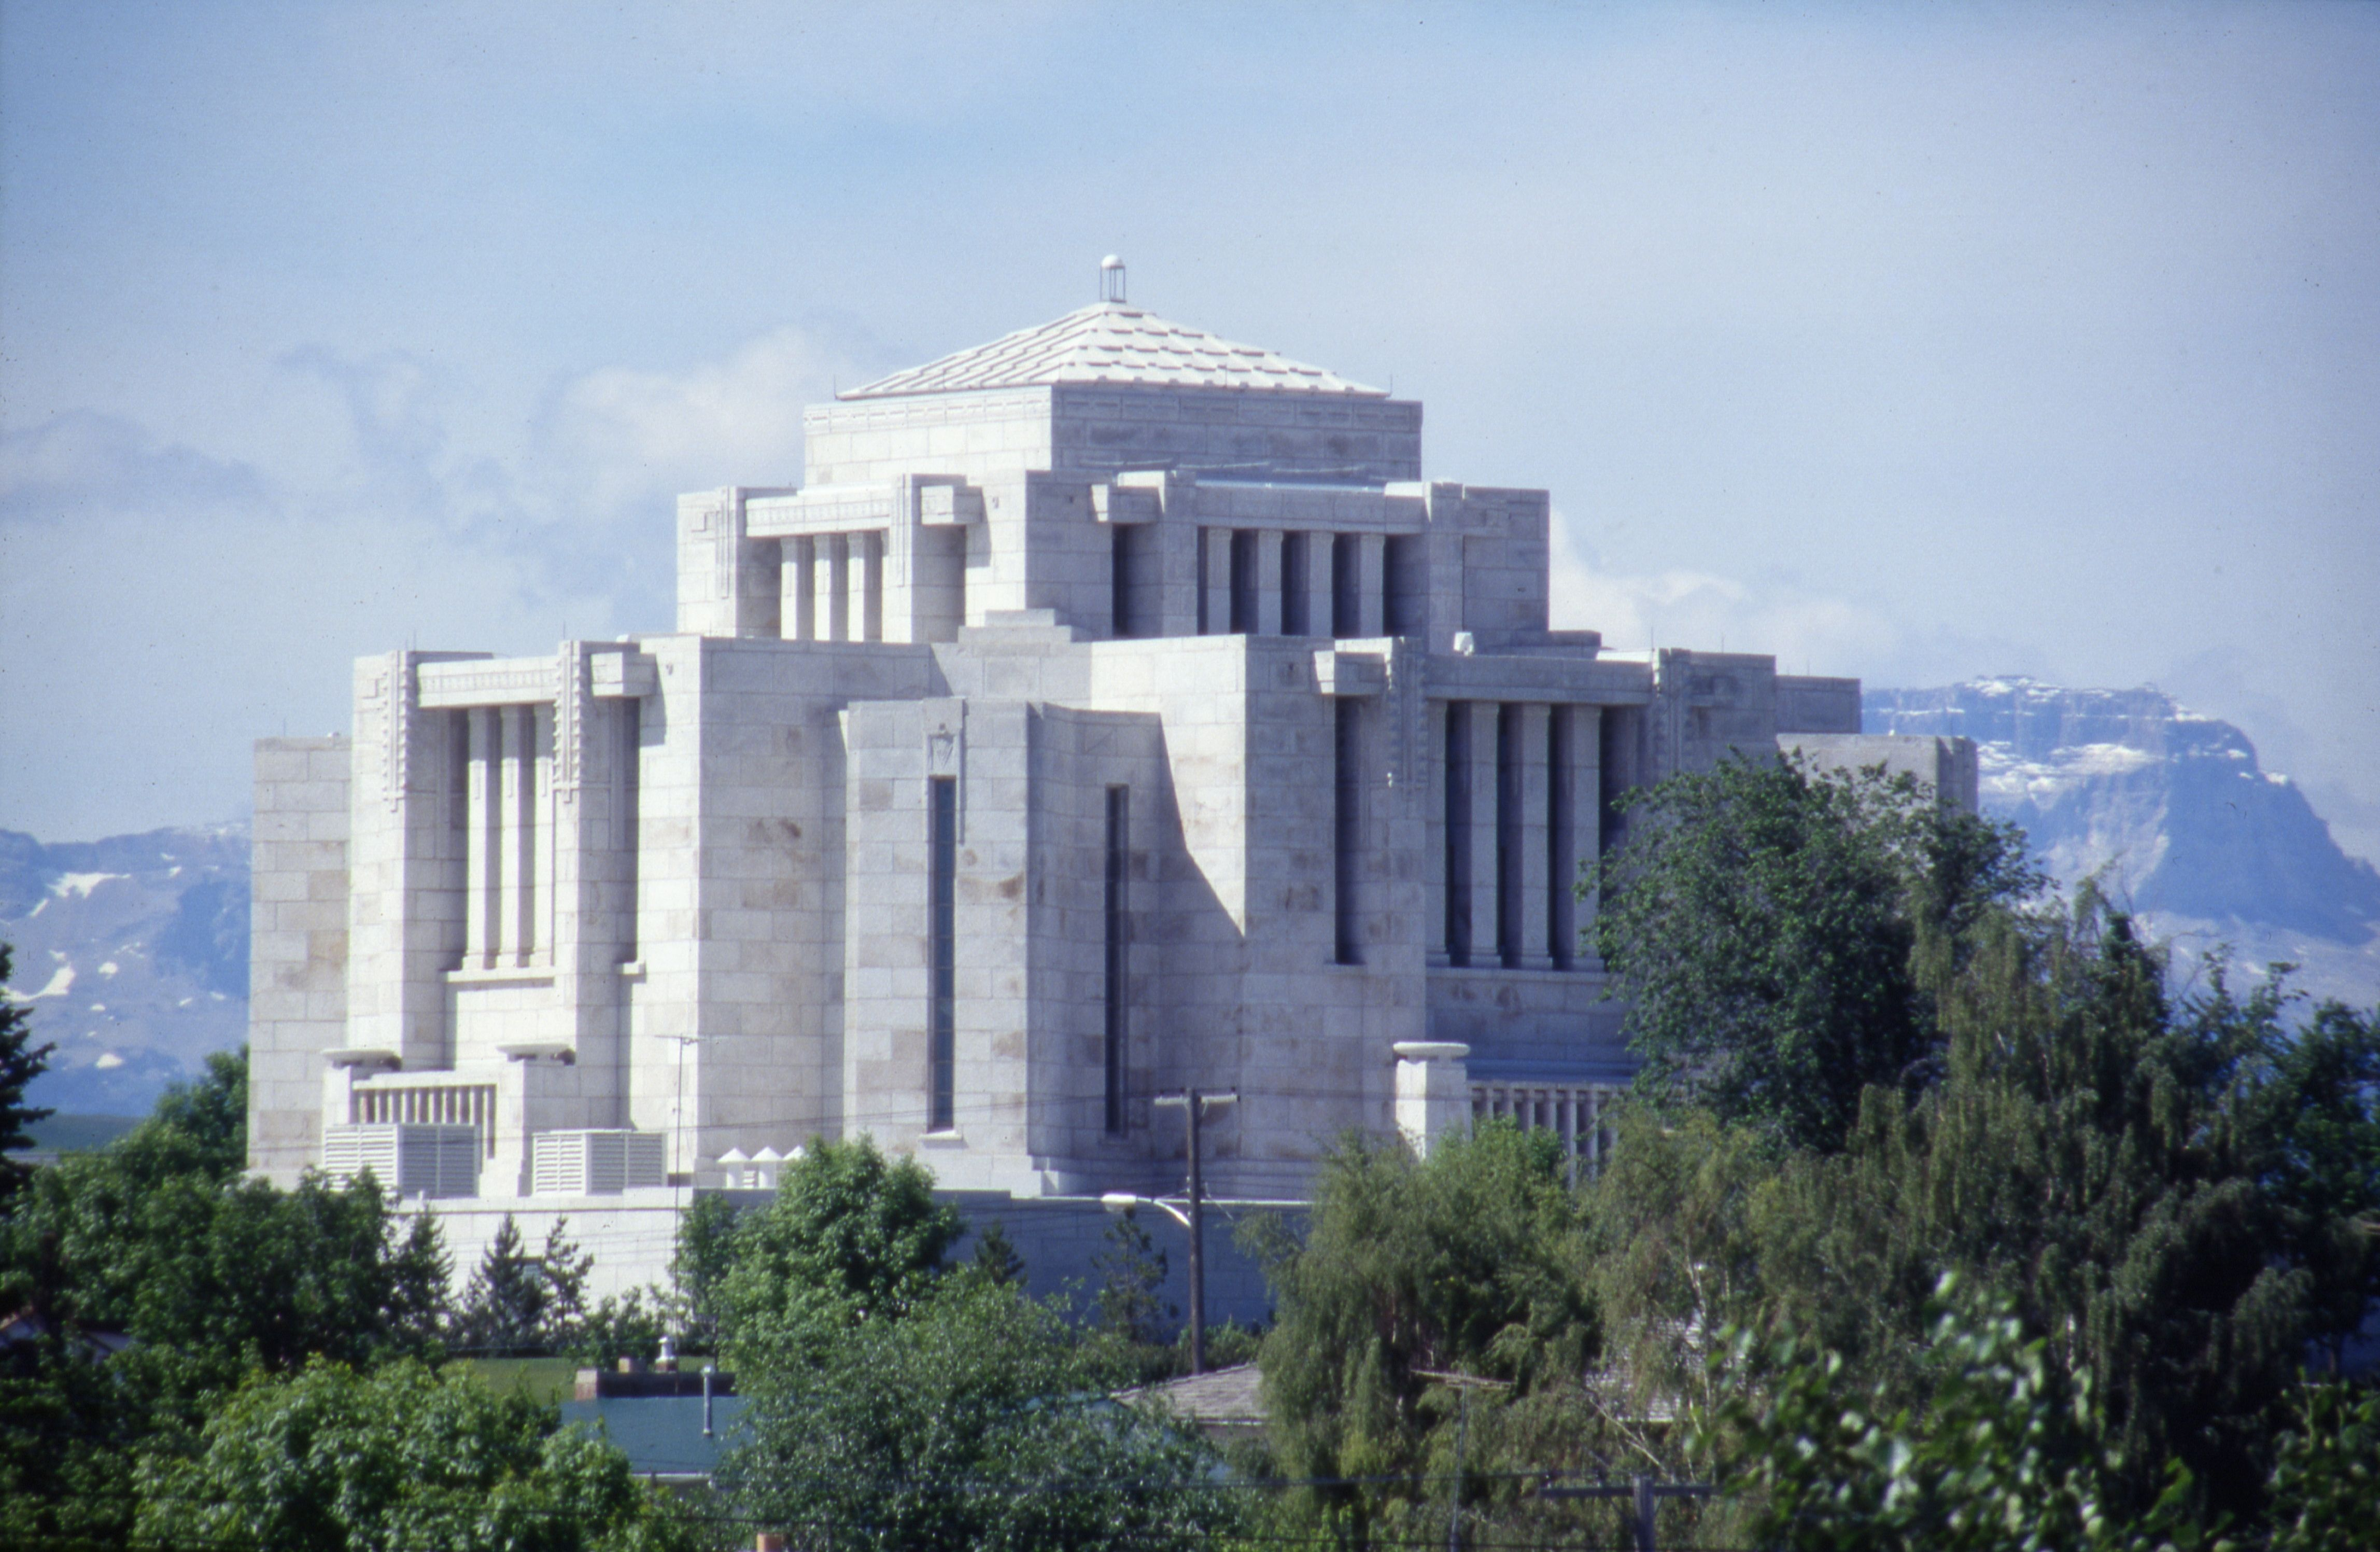 The Cardston Alberta Temple during the daytime.